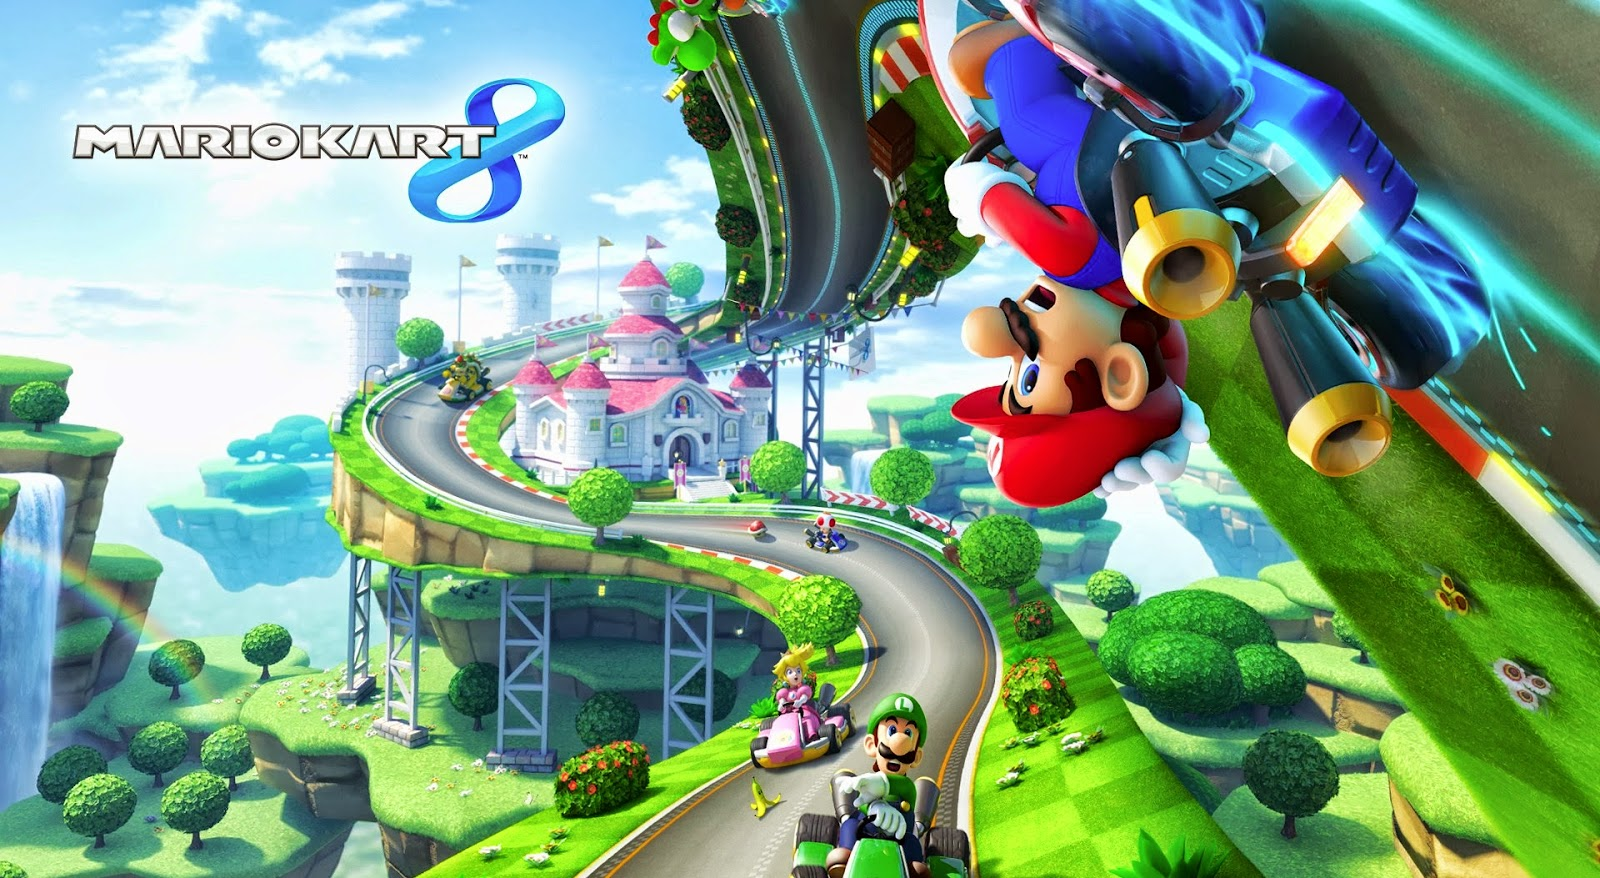 Buy Mario Kart 8 Online And Play Now